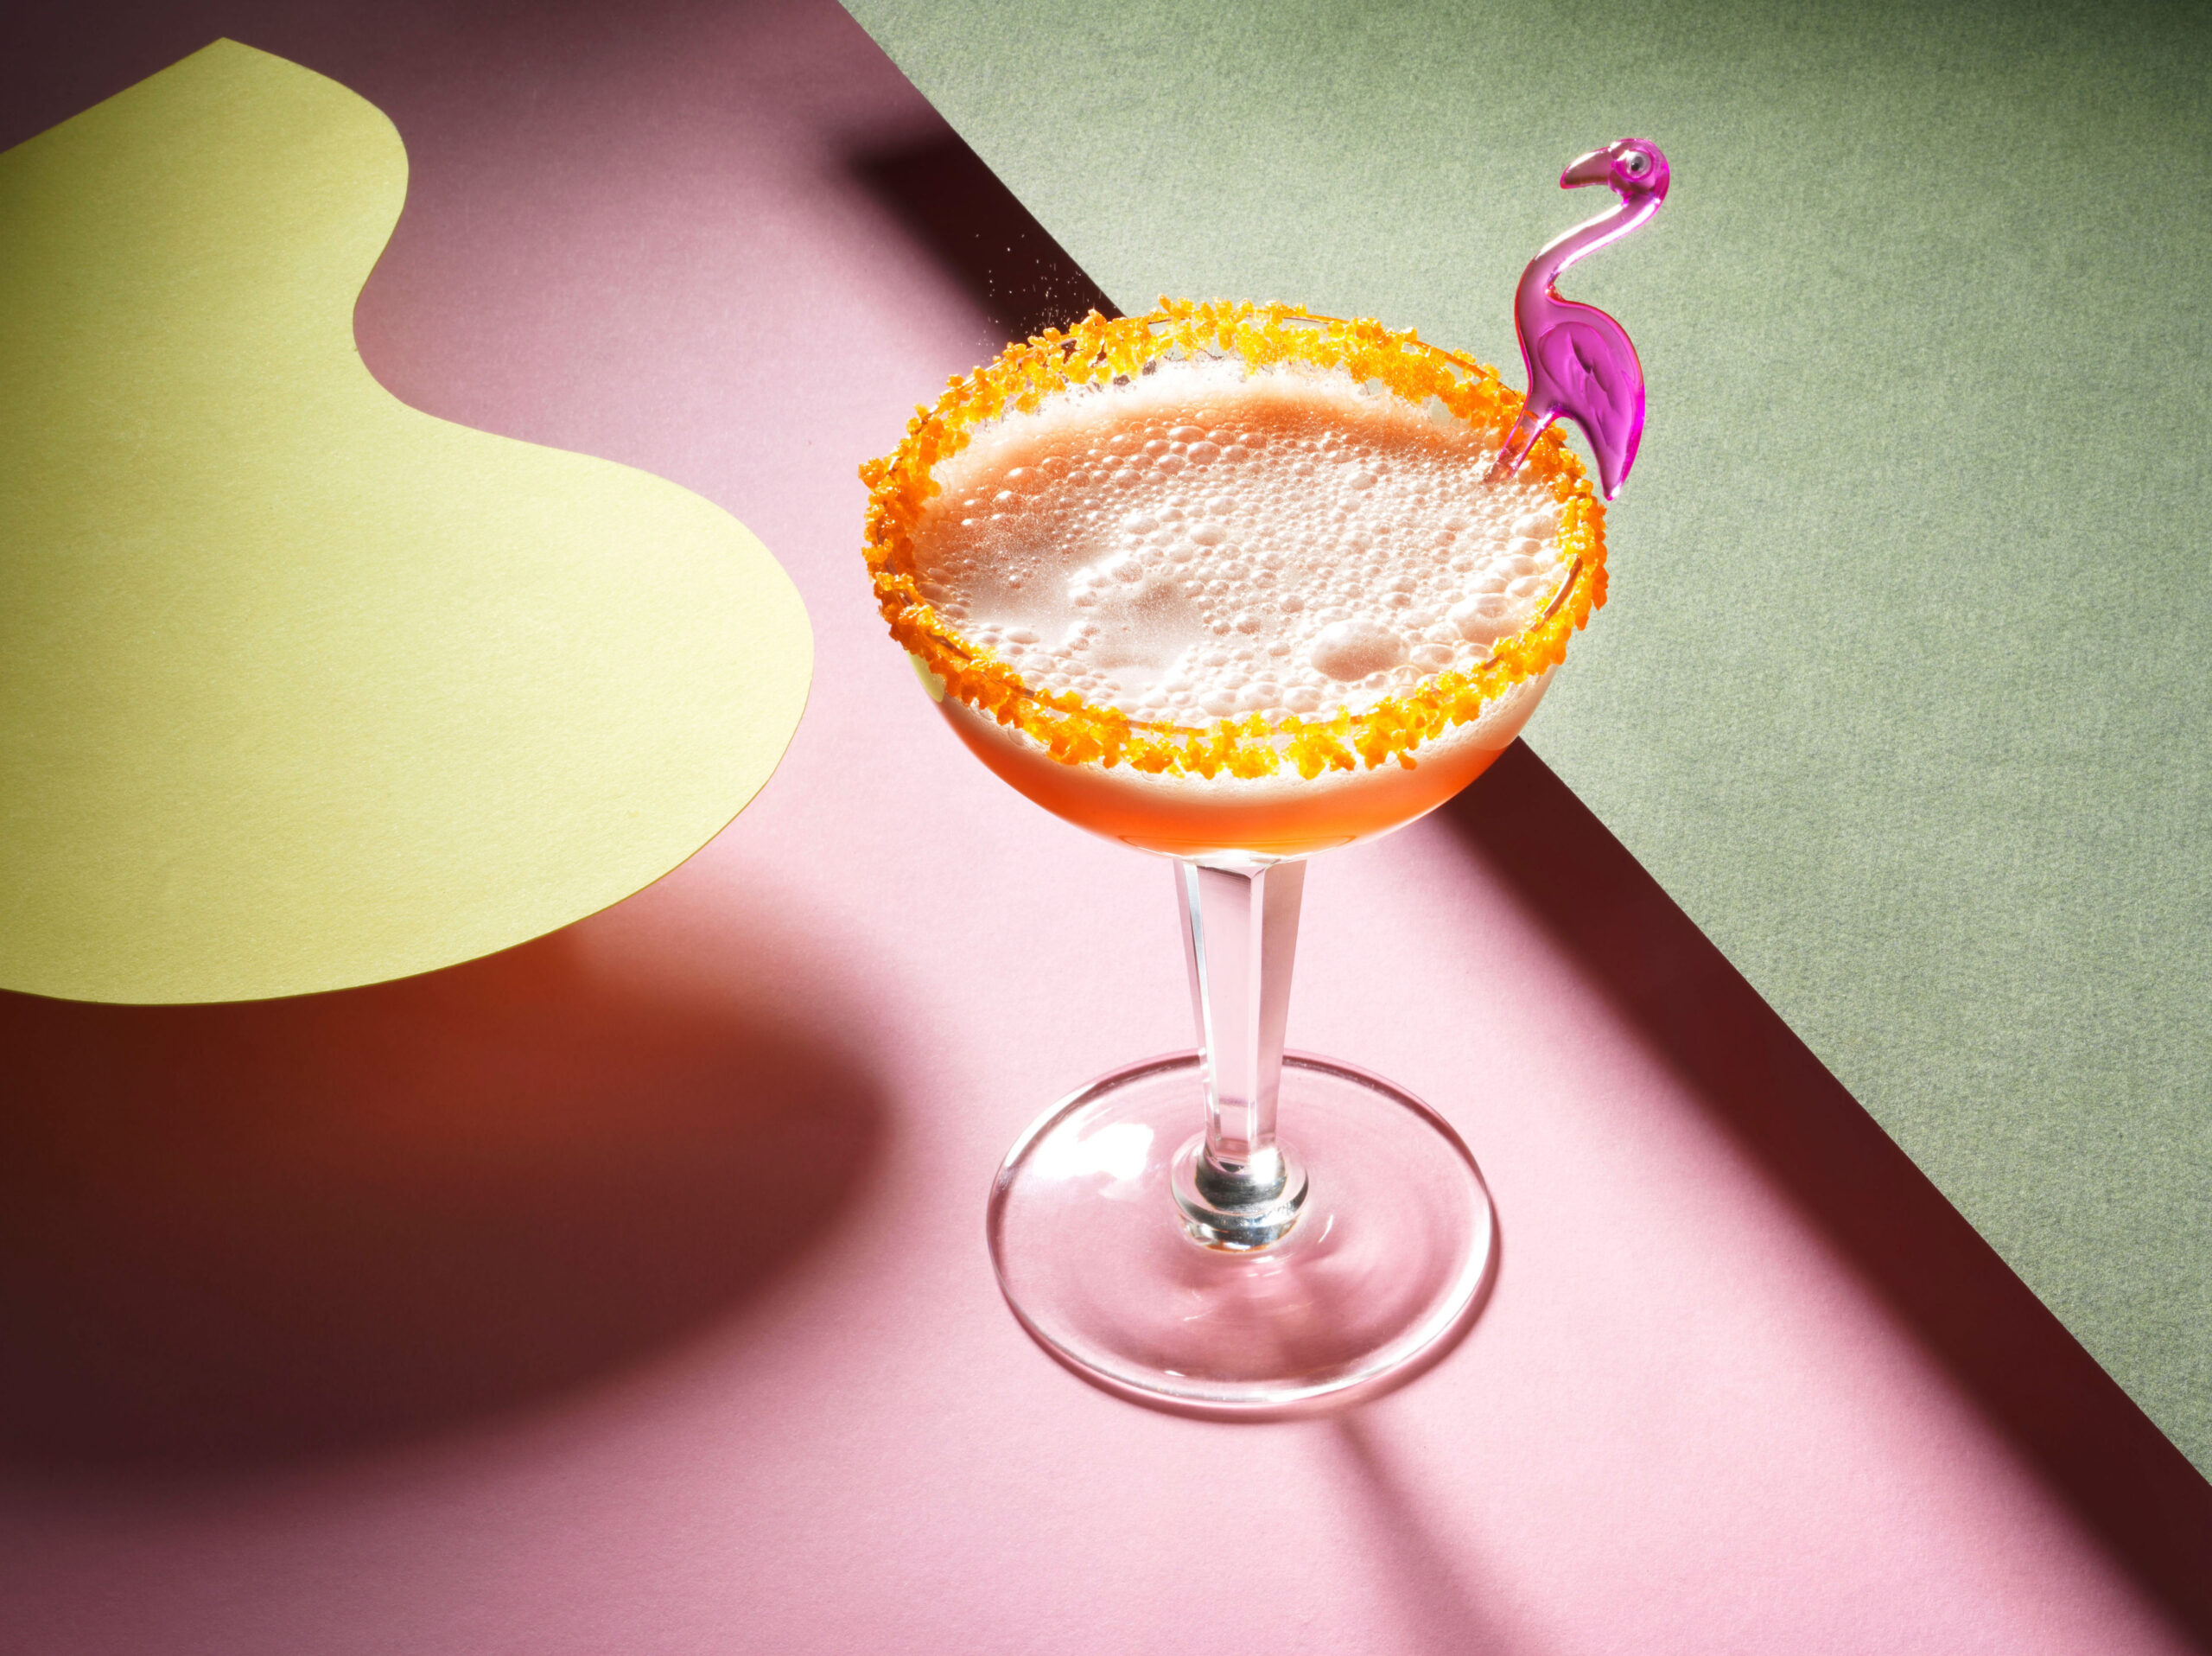 Creative food photo of SmartWhip recipe Glo-sour Cocktail made by STUDIO_M Amsterdam